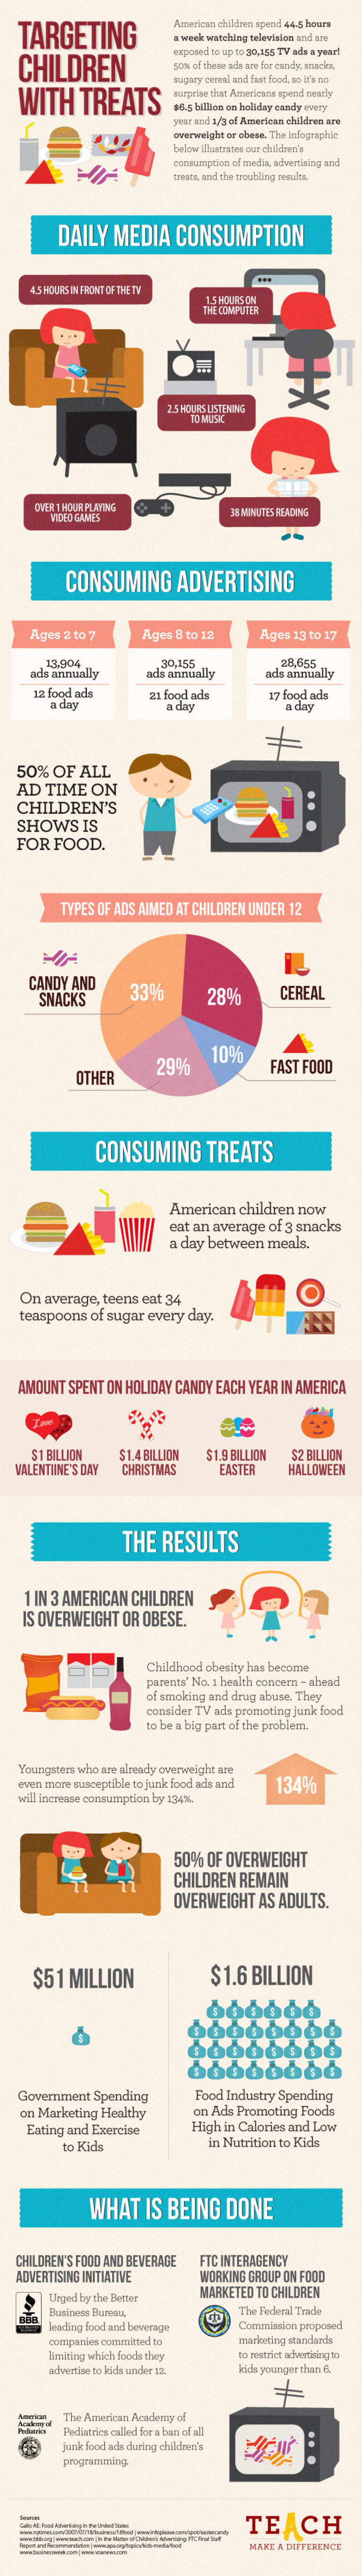 Targeting Children with Treats (Infographic)